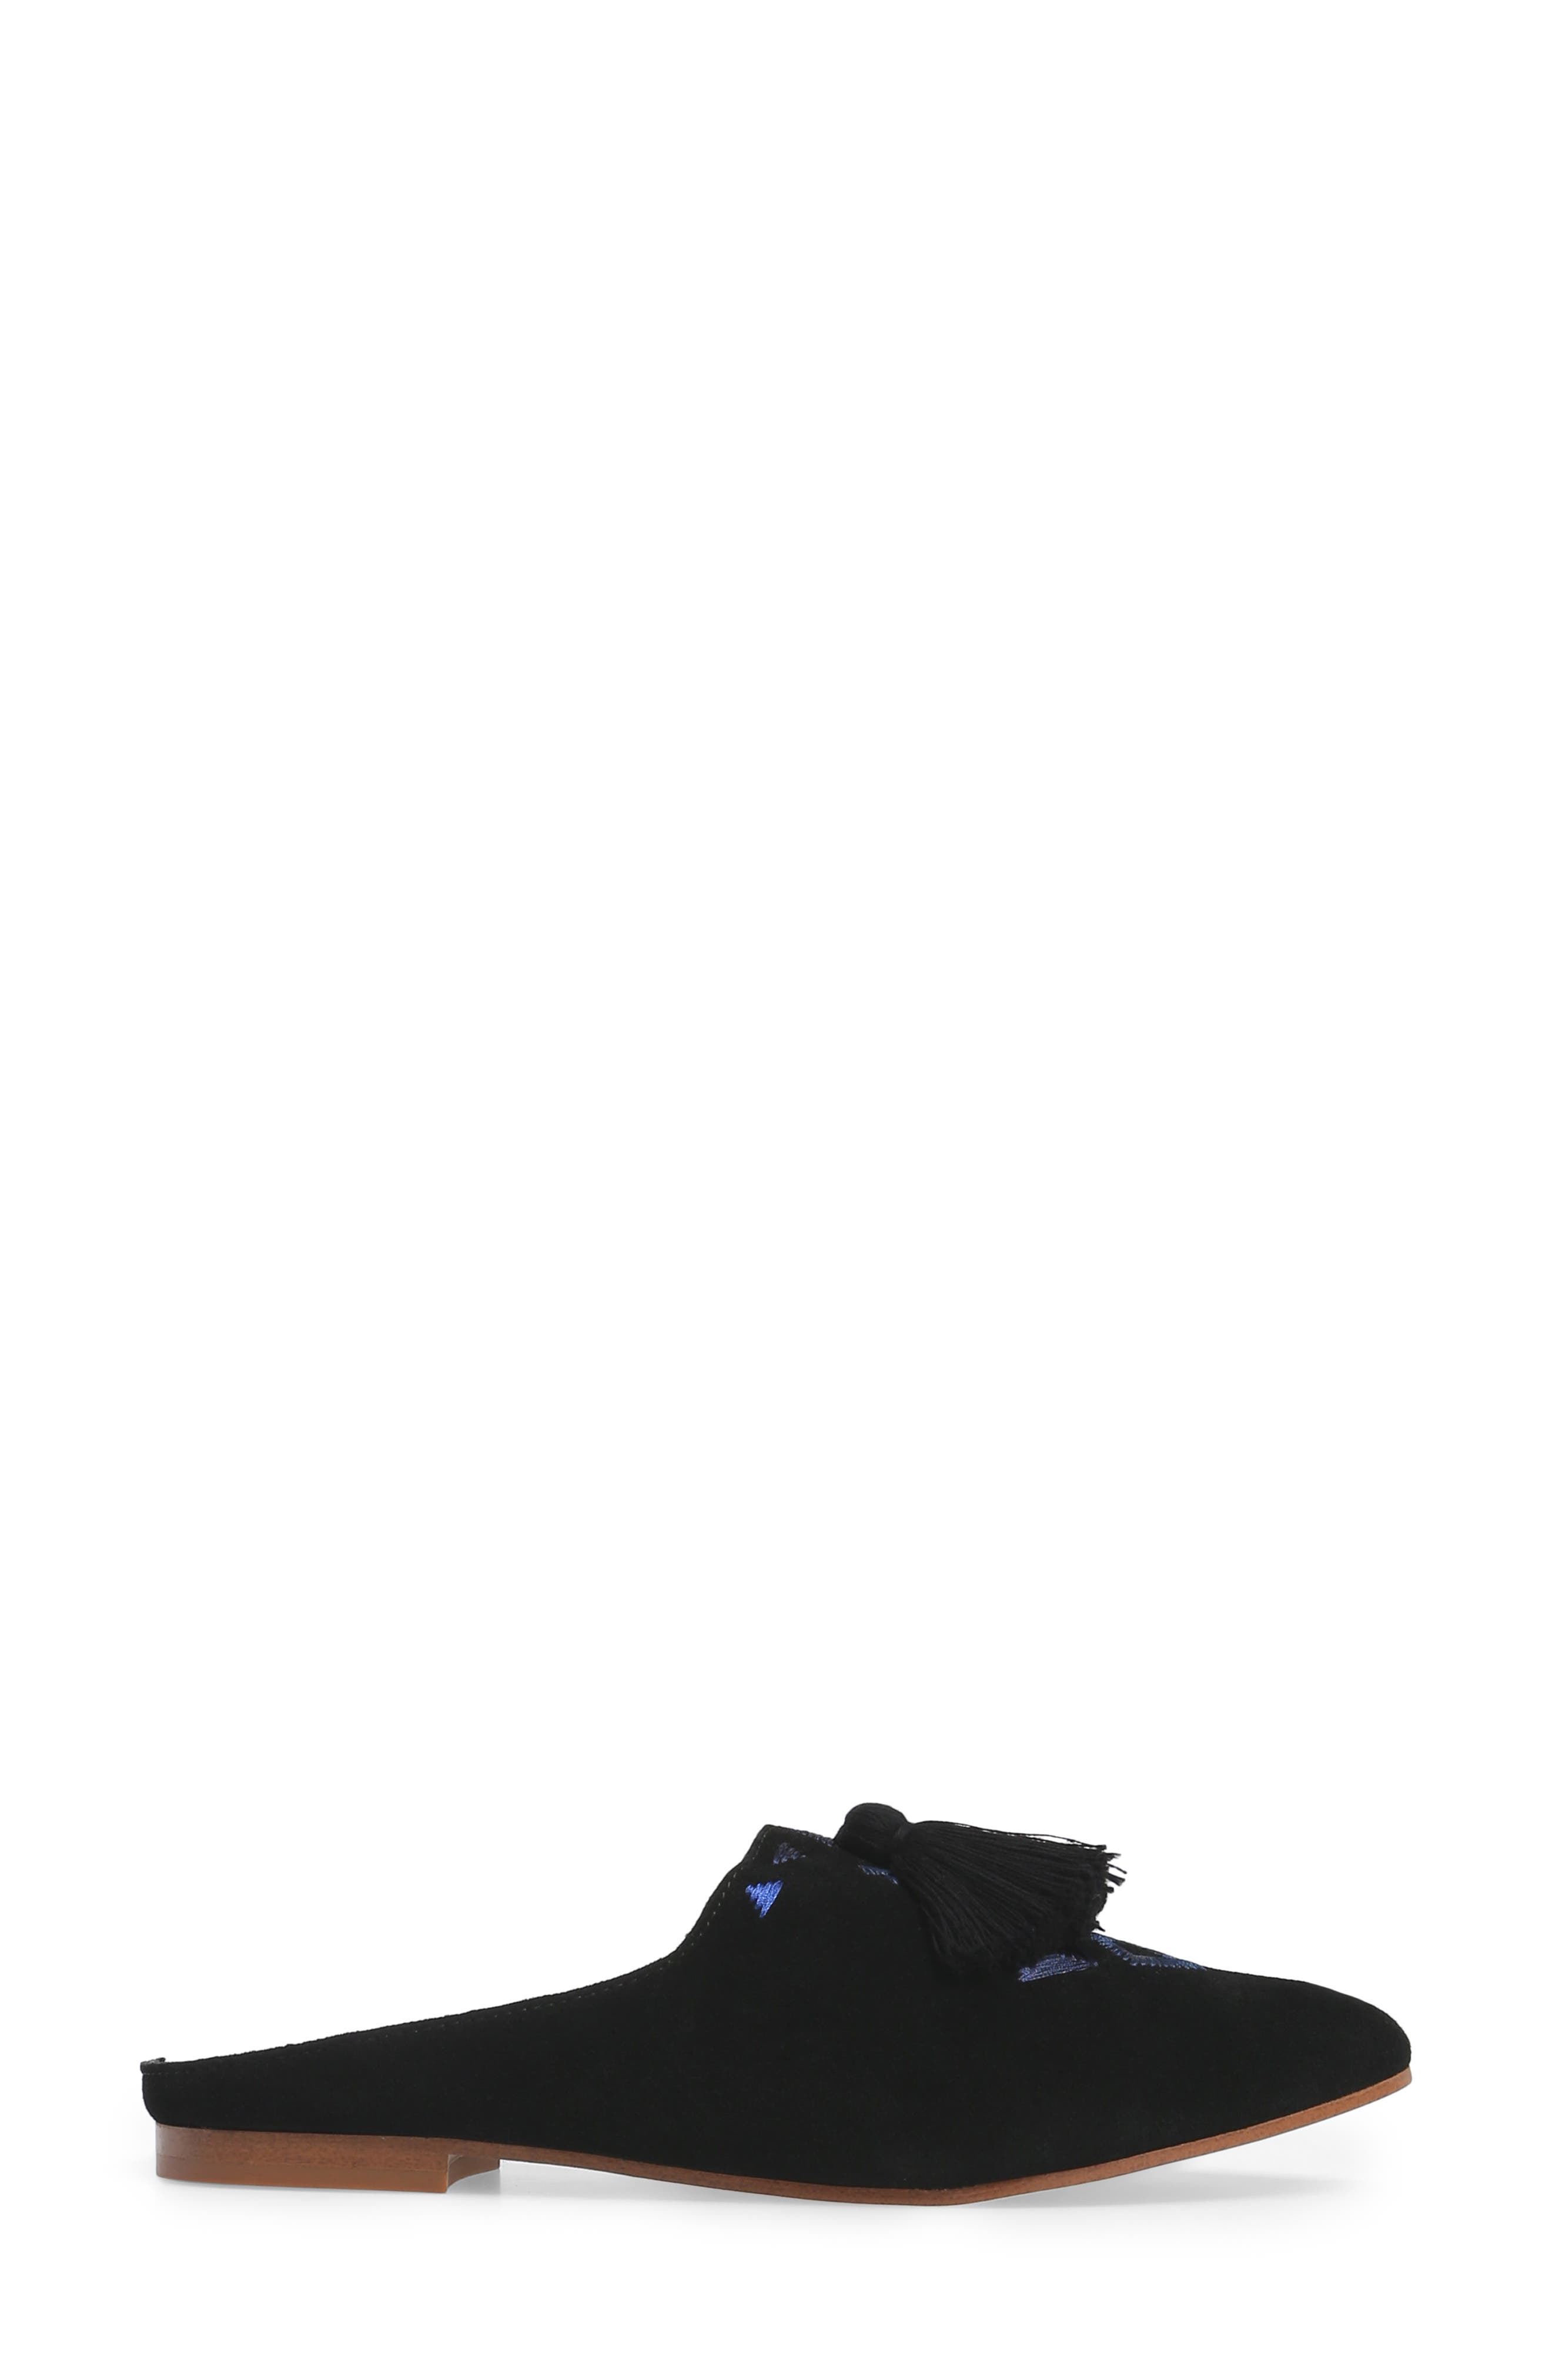 Alternate Image 3  - Soludos Palazzo Loafer Mule (Women)